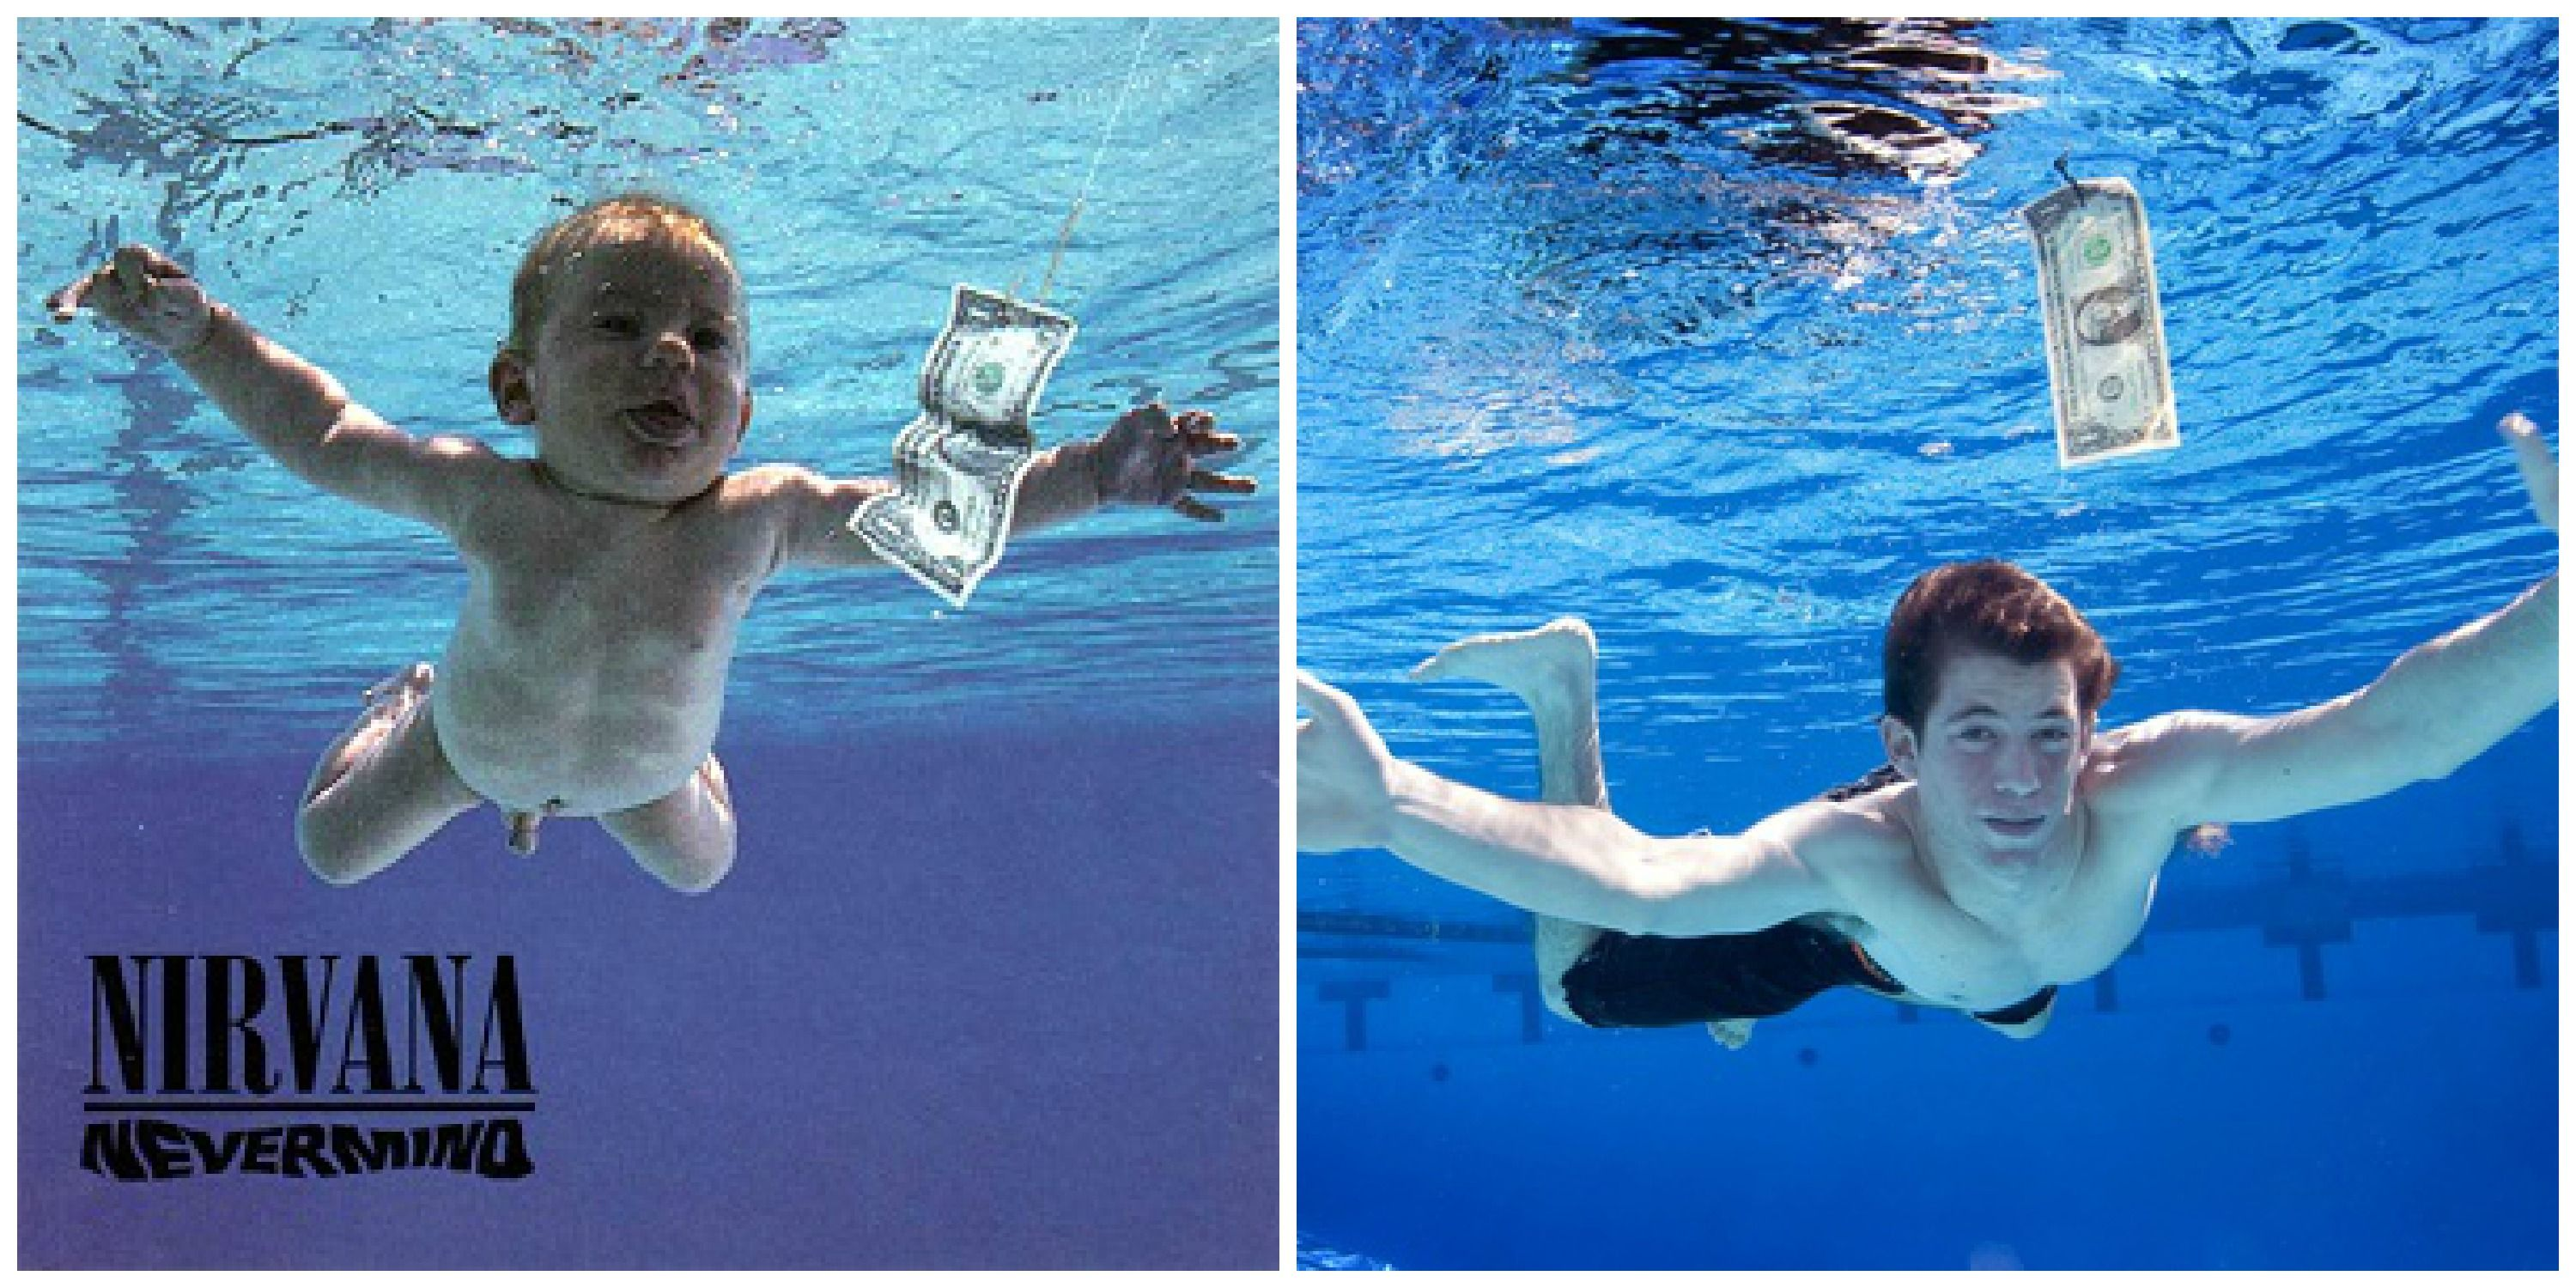 Spencer Elden, now 20, recreating the Nirvana Nevermind ...